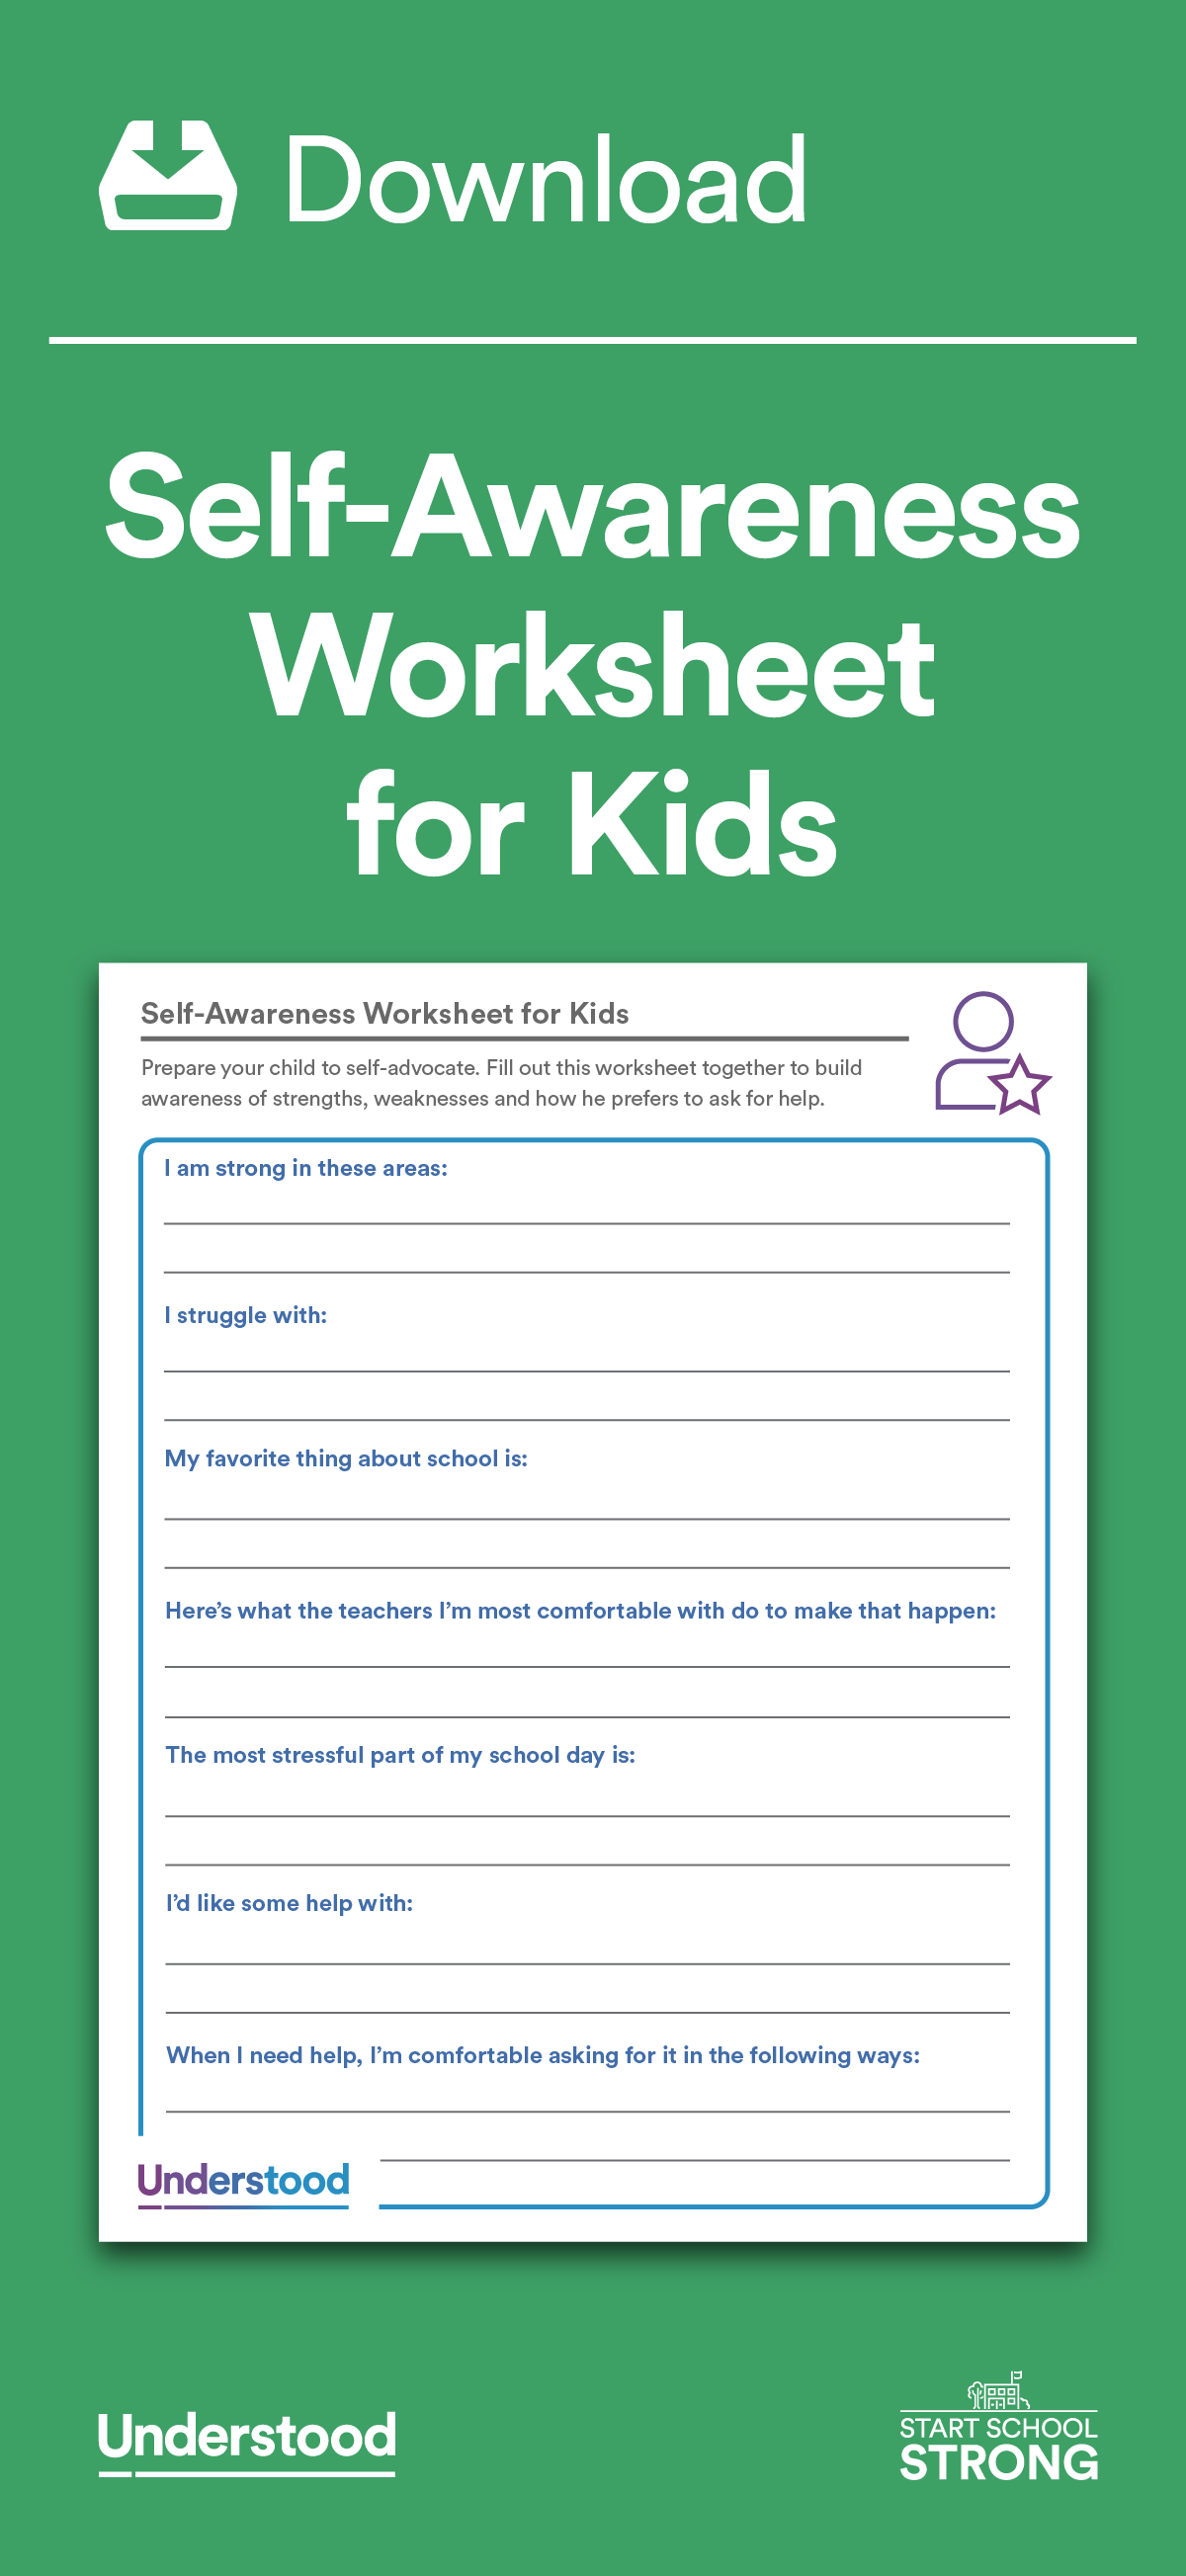 Worksheet Self Advocacy   Worksheets   Elementary Students download self awareness worksheets for kids what type types of kids